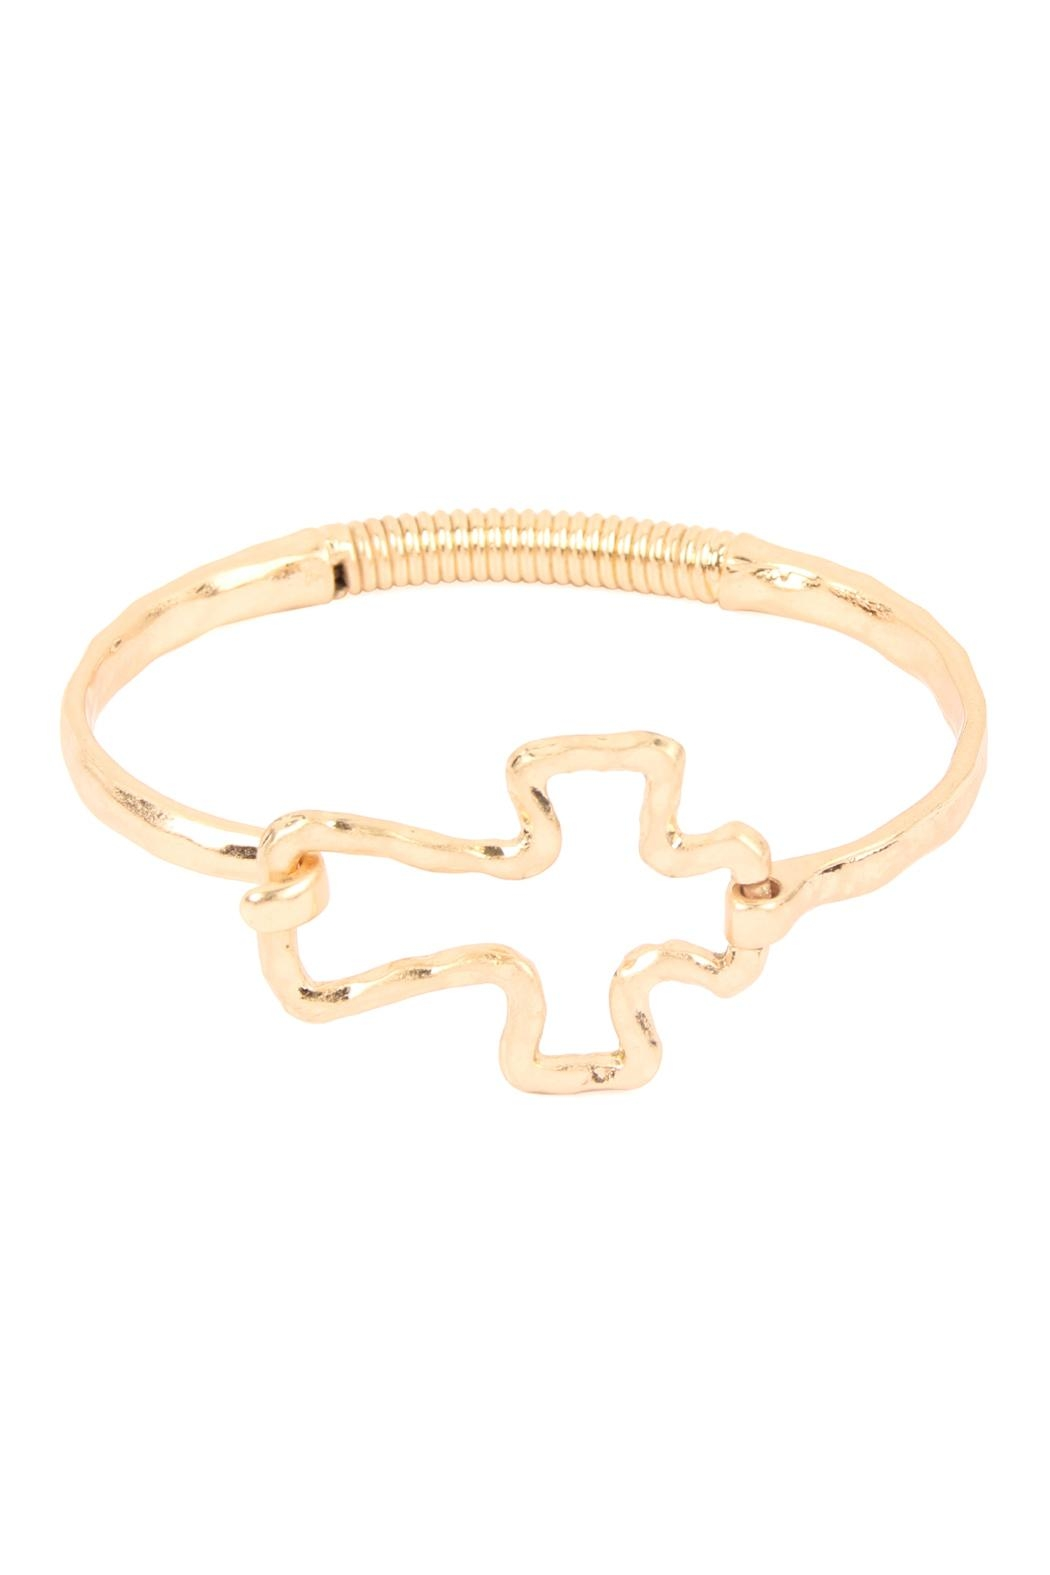 Riah Fashion Hammered-Cast-Cross Hinge-Cuff-Bracelet - Front Cropped Image